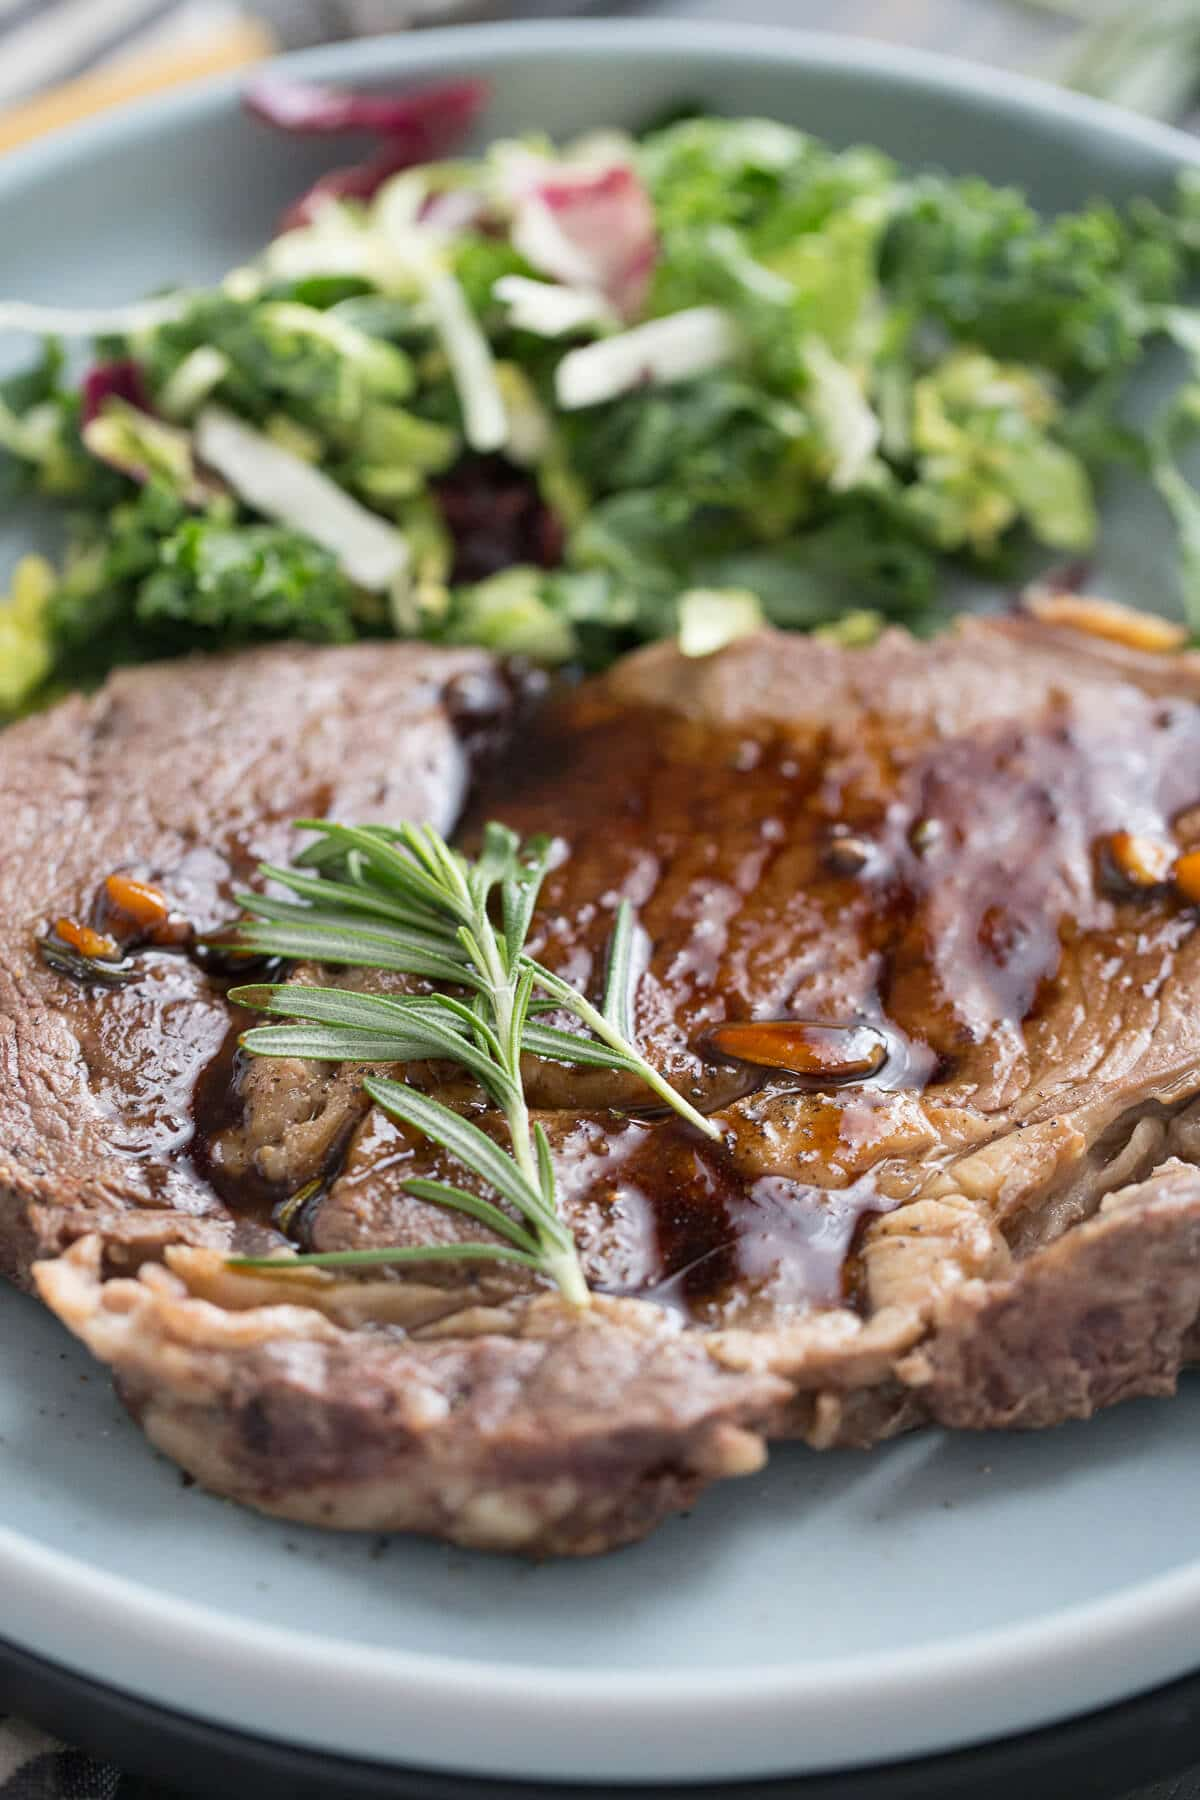 Ribeye steaks are lightly pan-seared then drizzled with a silky Kahlua sauce!